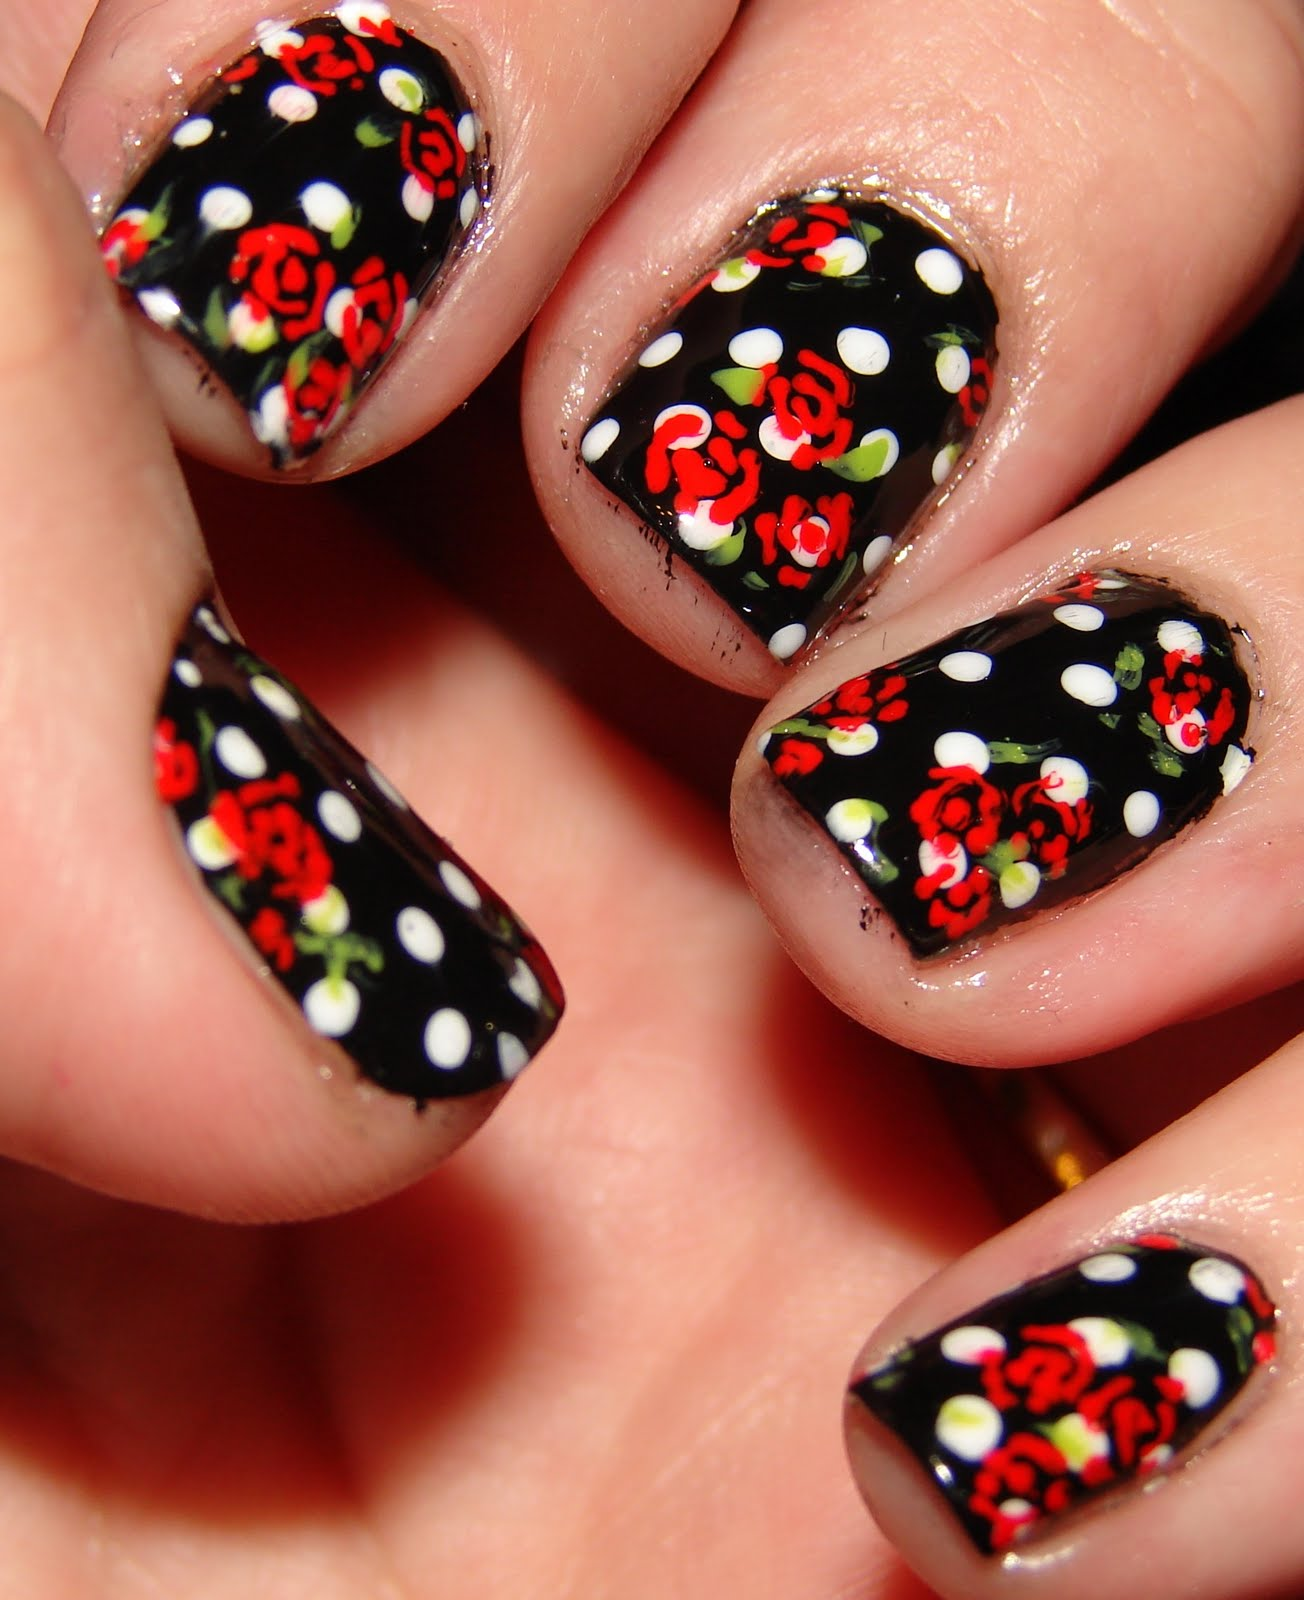 Black Nail Art: Kawaii Nail Art: What's Black, White And Red All Over?